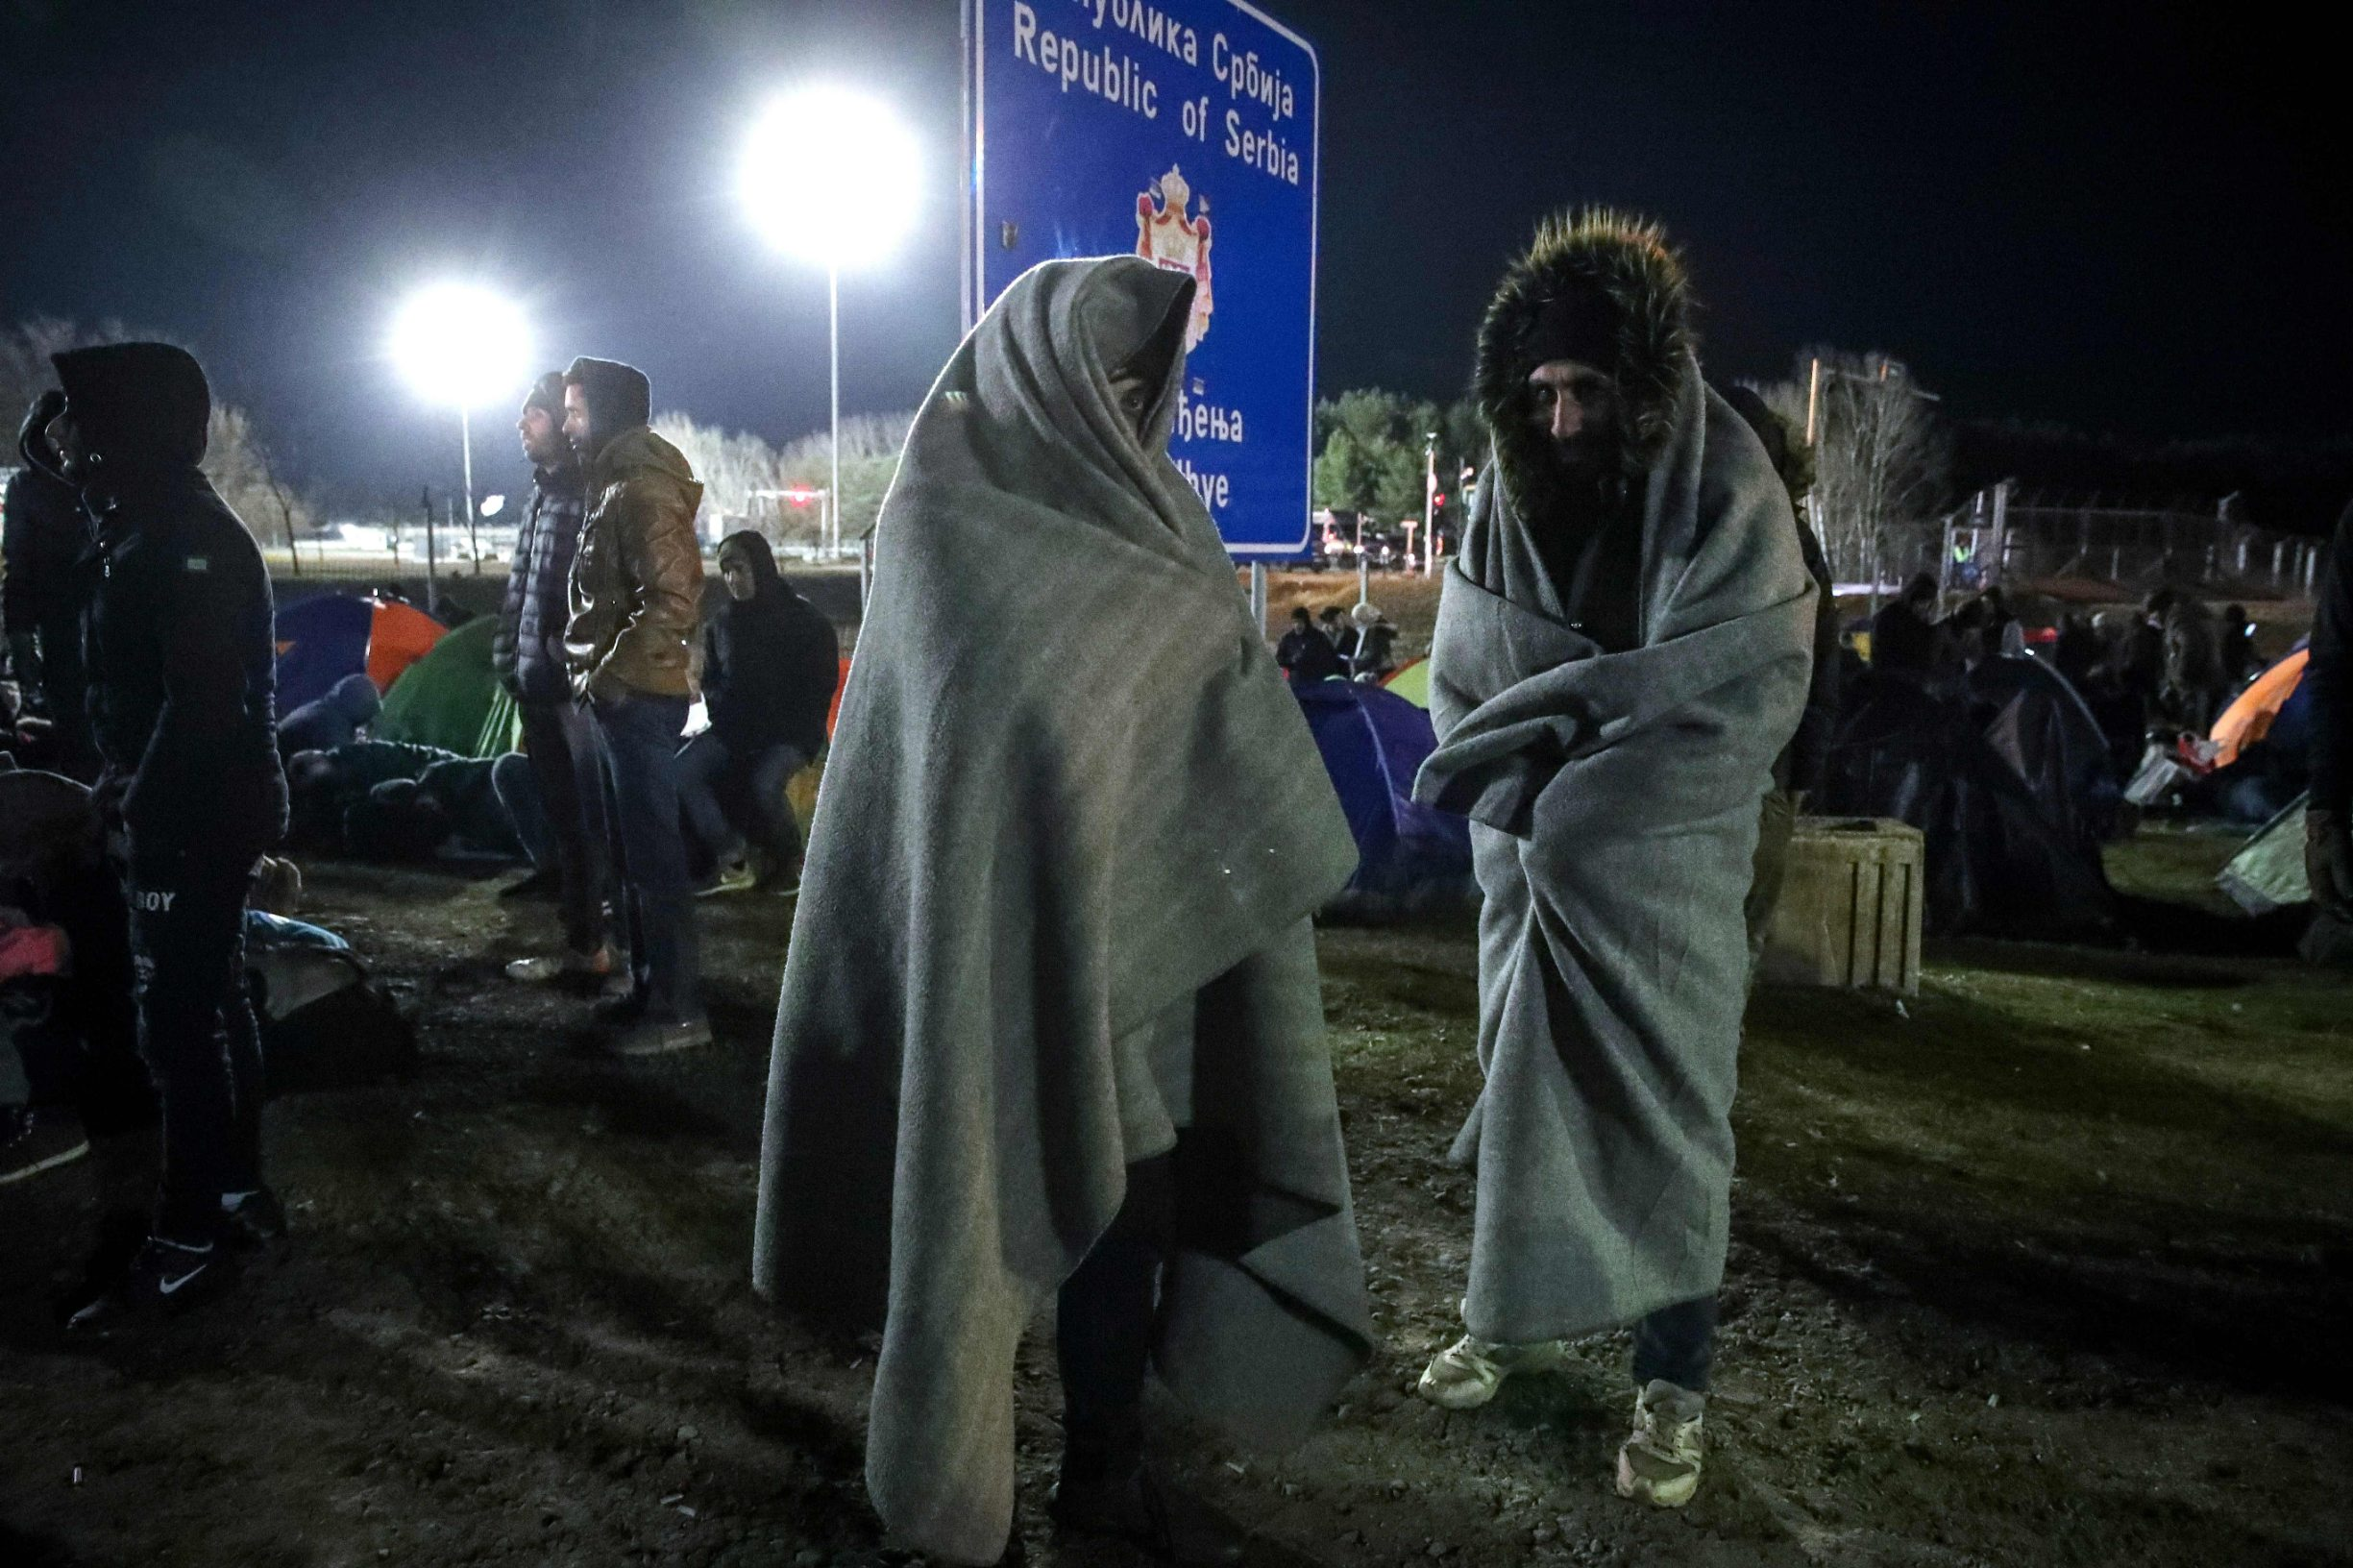 Migrants stand near the border fence at the Serbian Kelebija border village near Subotica on February 6, 2020, as the Tompa road border-crossing on the Hungarian side has been temporarily closed by the Hungarian police. - Hungarian police temporarily closed a Serbian border crossing on February 6 after a large migrant group showed up there and demanded to be let in. The attempt came a week after 60-70 people tried to get into Hungary at another Serbian border crossing under cover of night, prompting security staff to fire warning shots in the air. Hungarian police report a sharp rise in attempts to cross the country's southern borders since December. (Photo by Istvan HUSZTI / AFP)